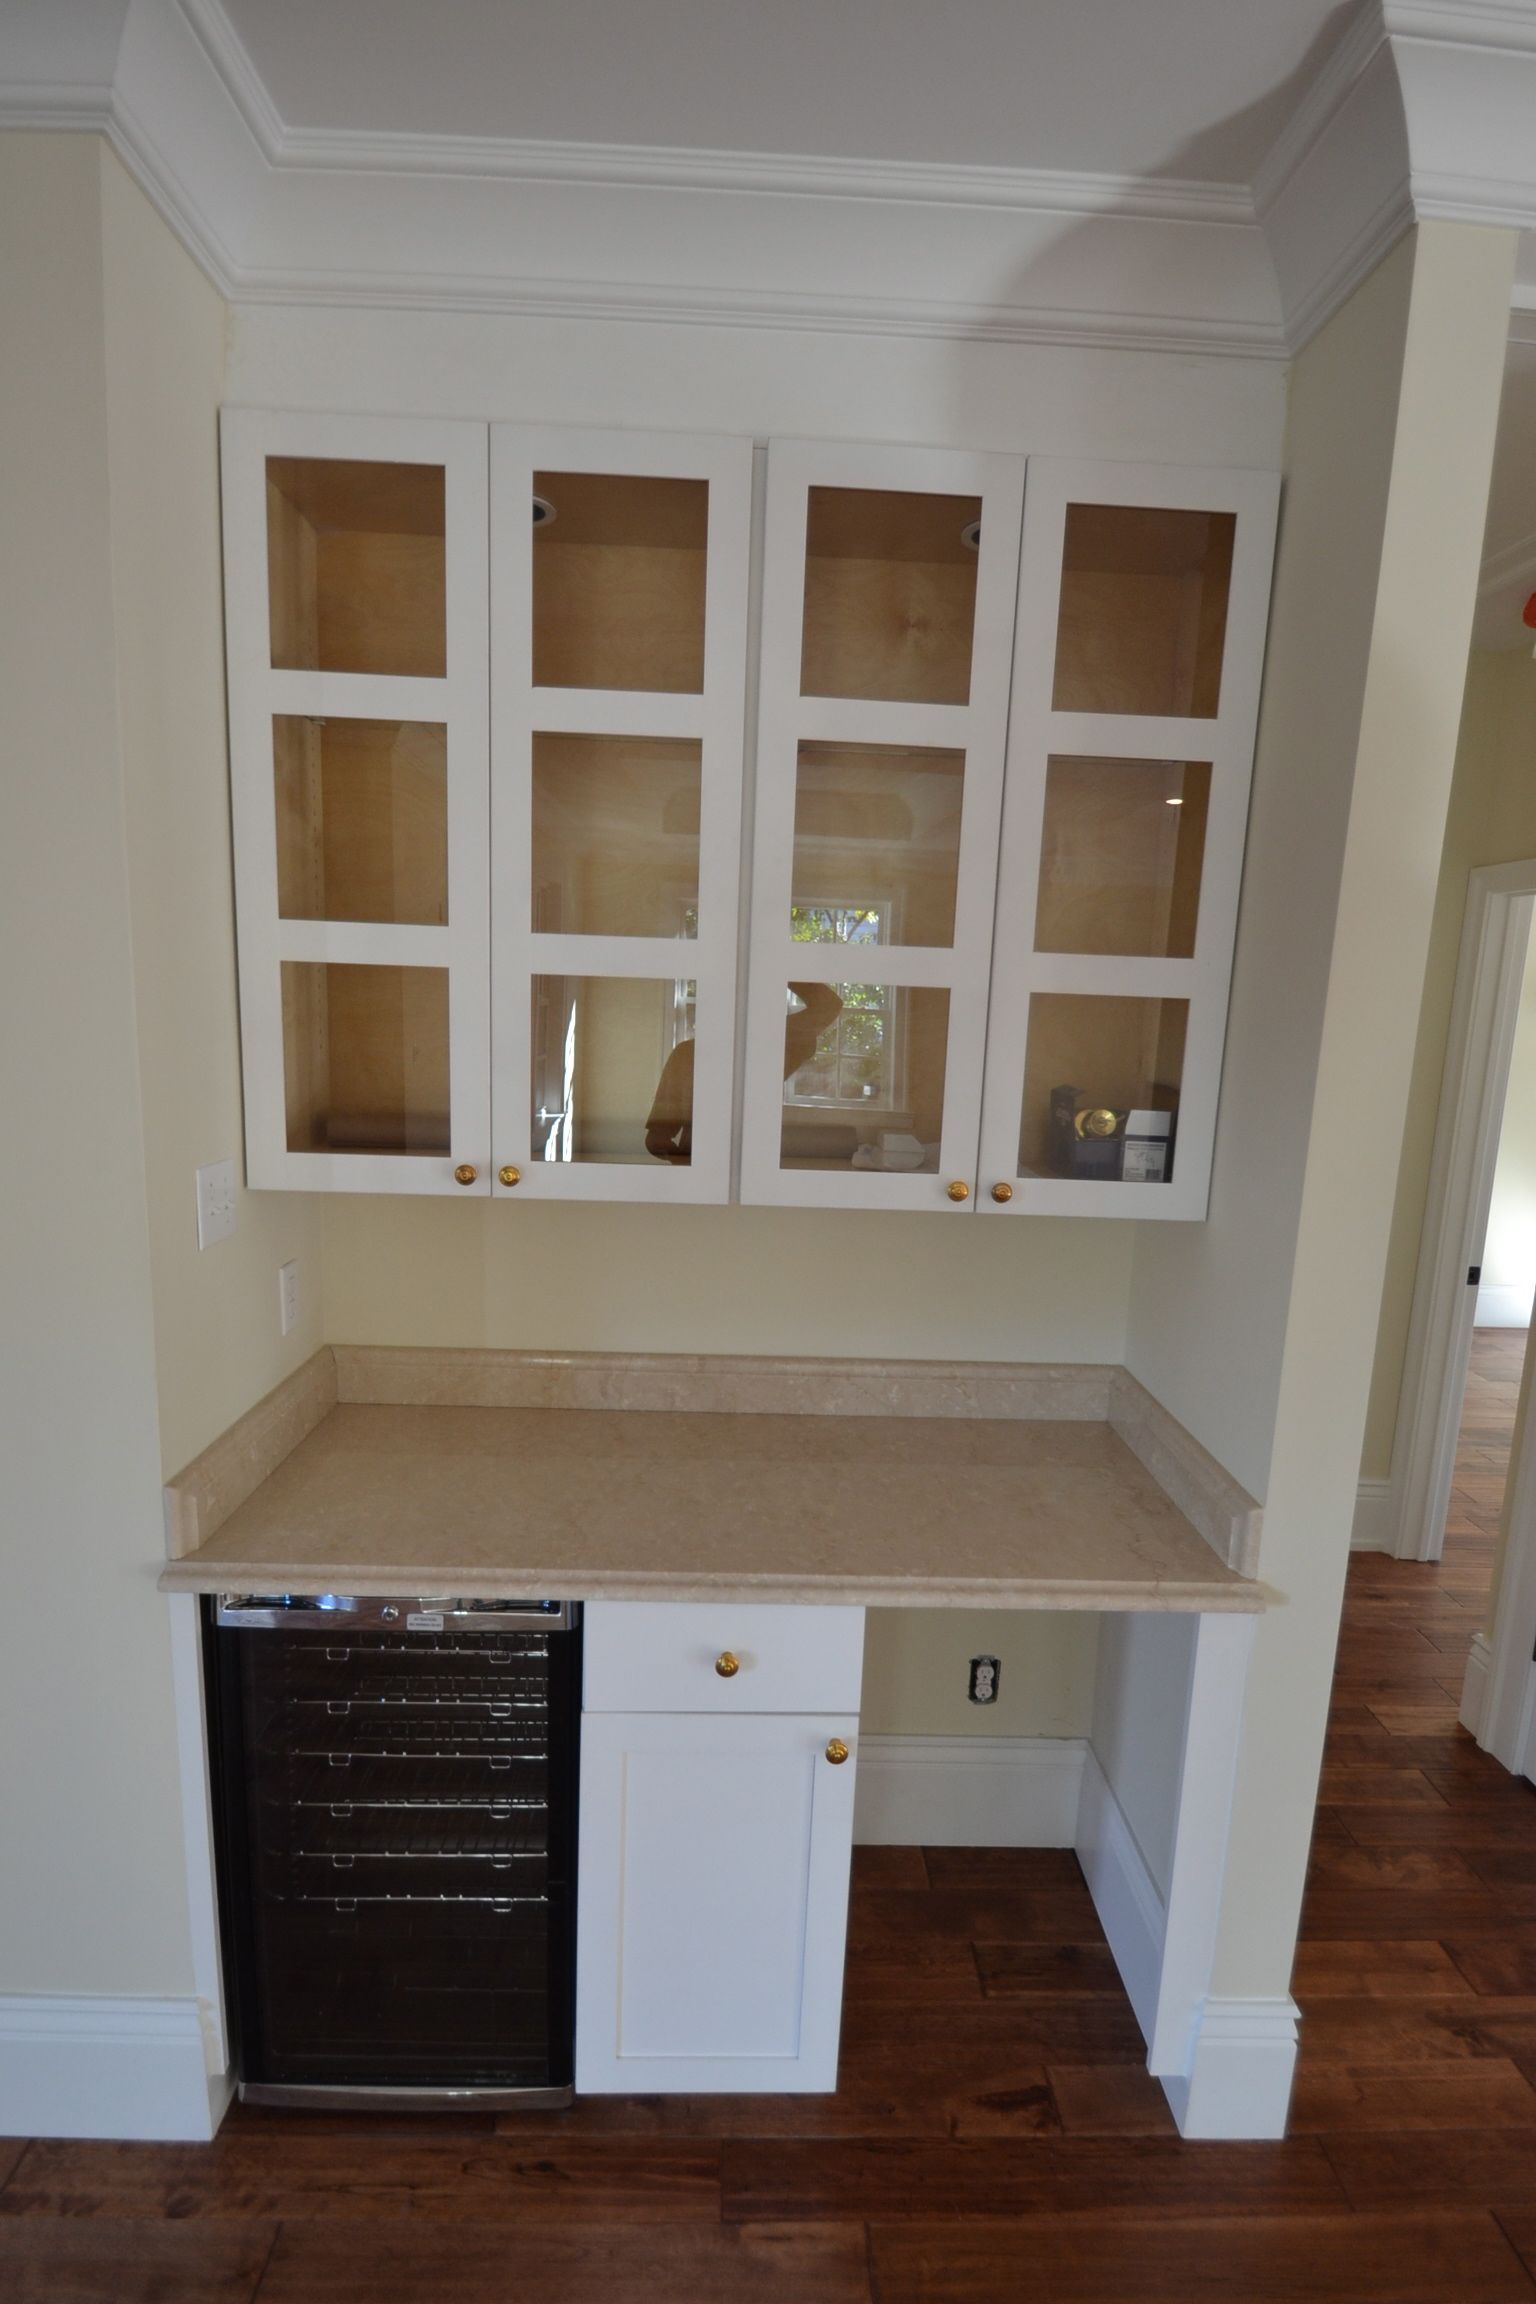 Custom designed and built cabinets, crema marfil marble countertop, glass front wall cabinets, under-counter wine fridge and space/plumbing for under-counter ice maker